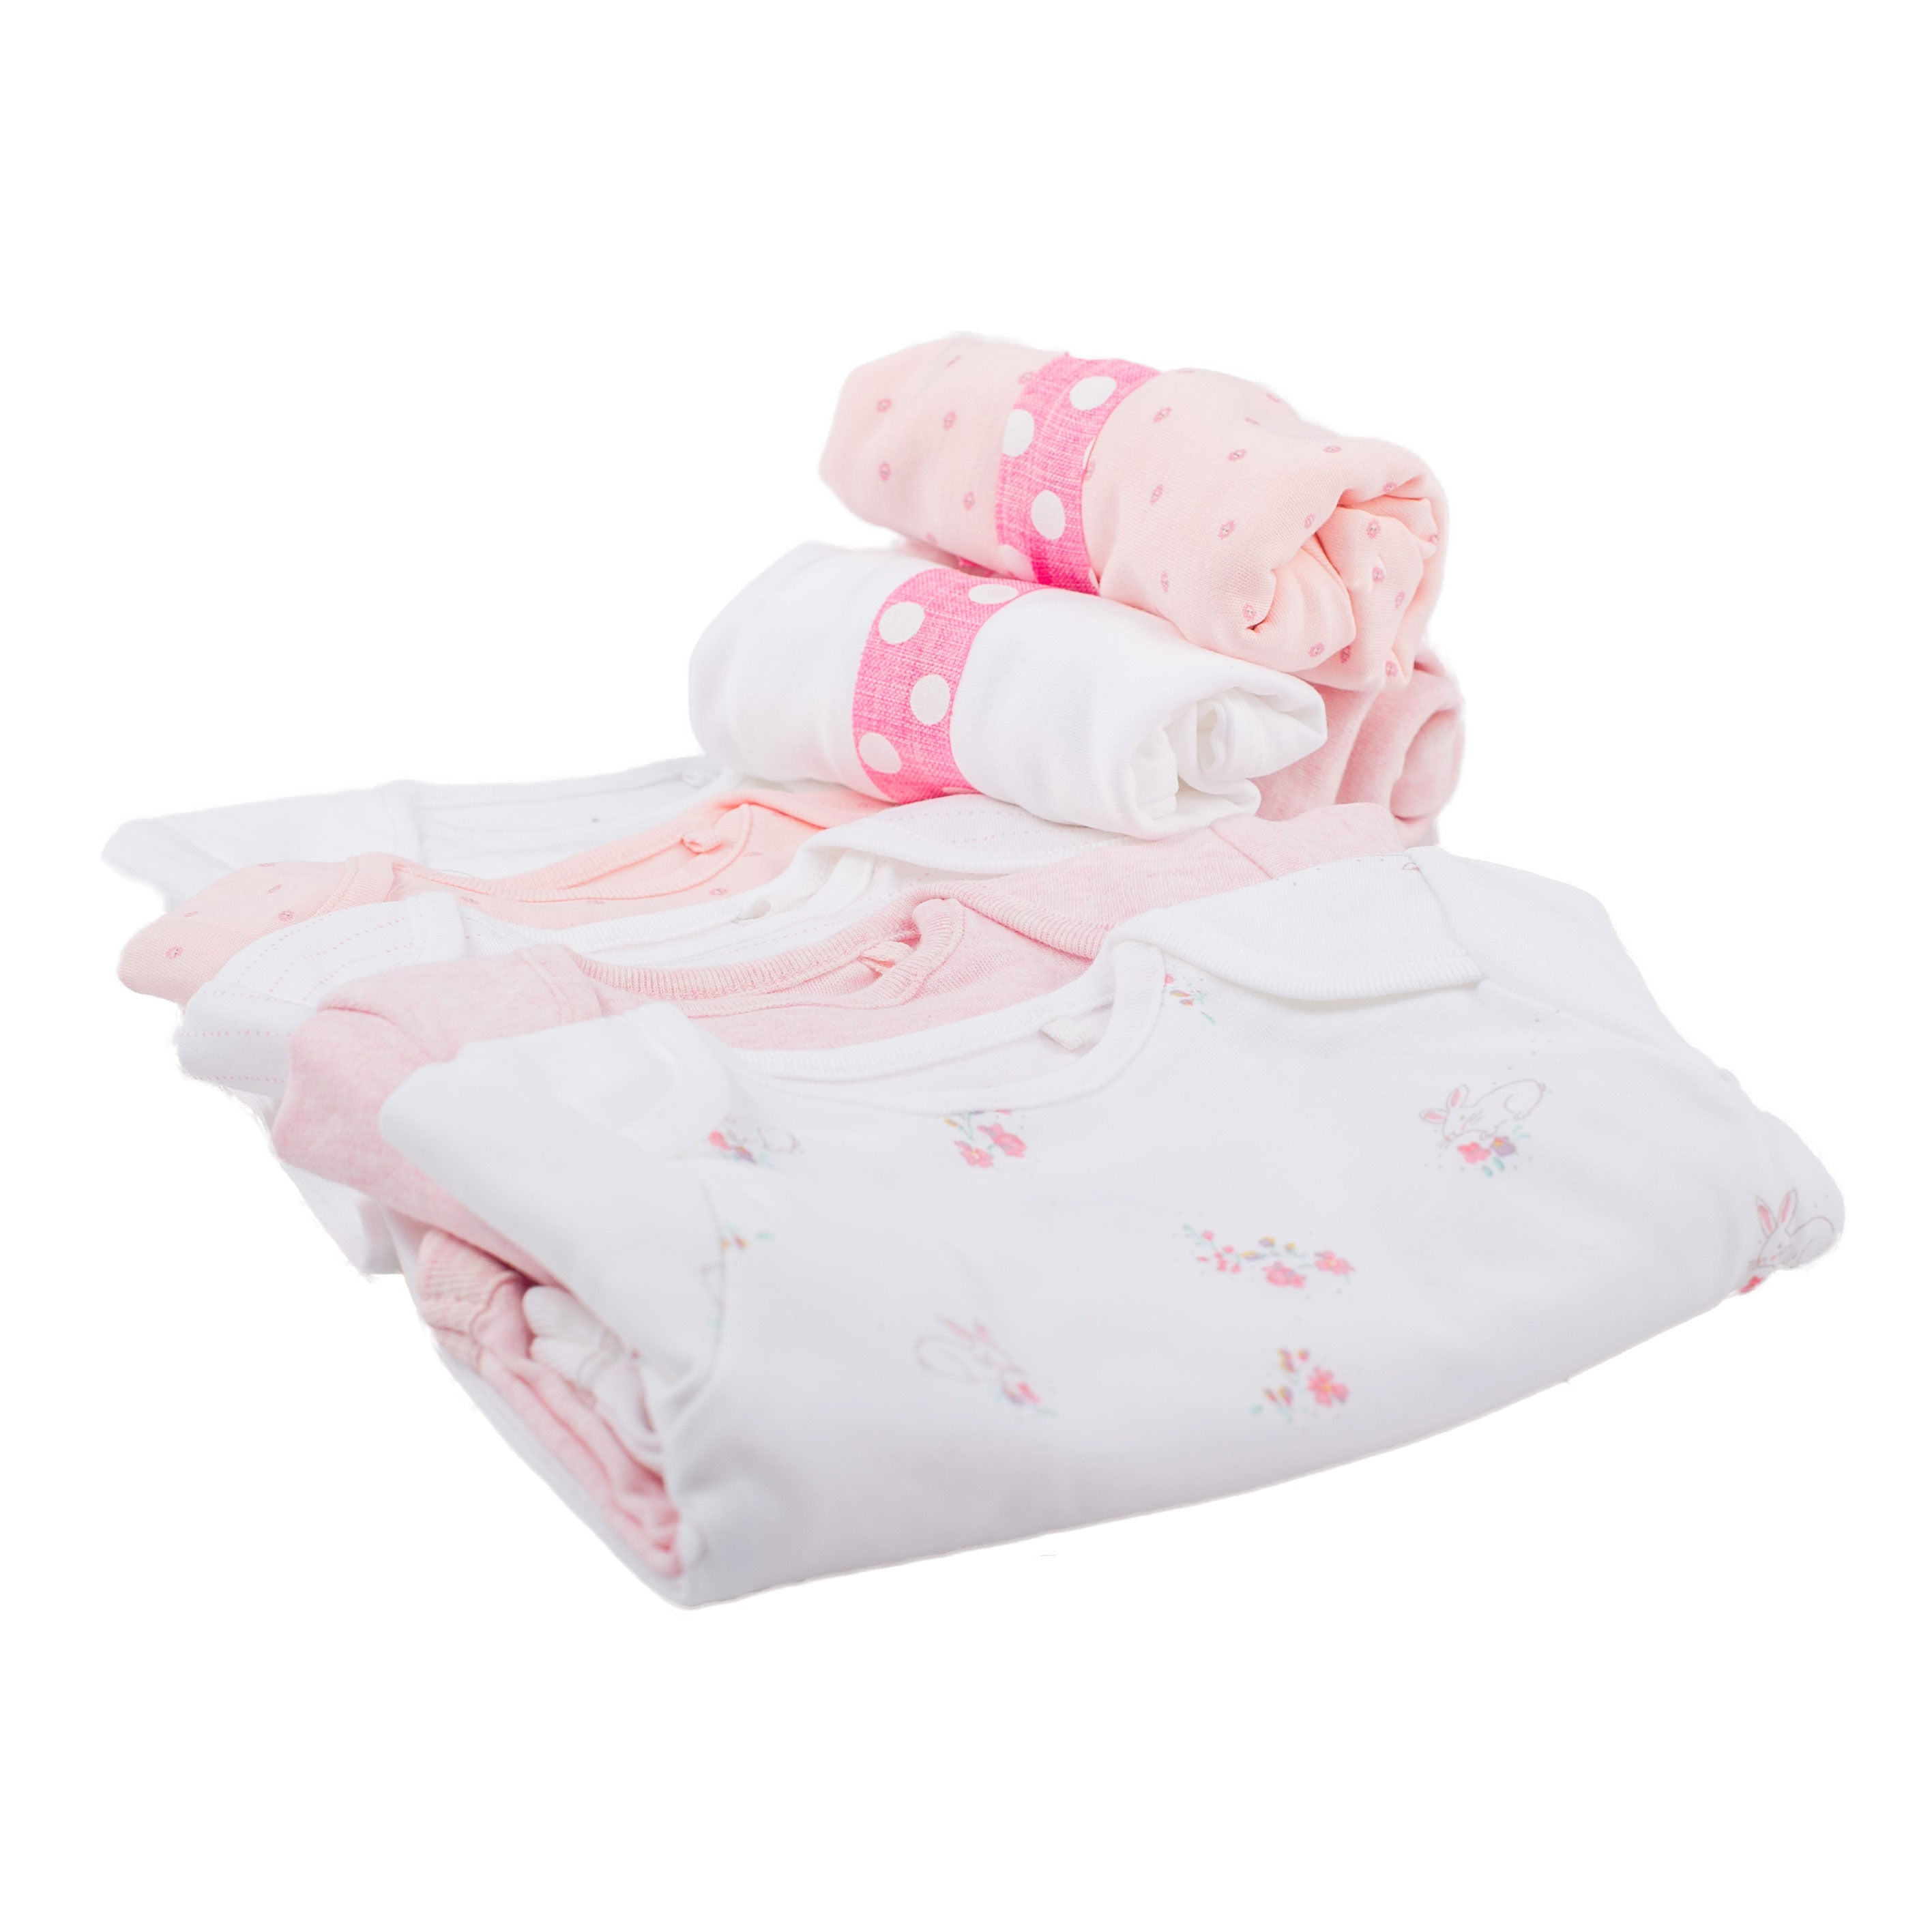 Baby Wear & Play Box - Pink